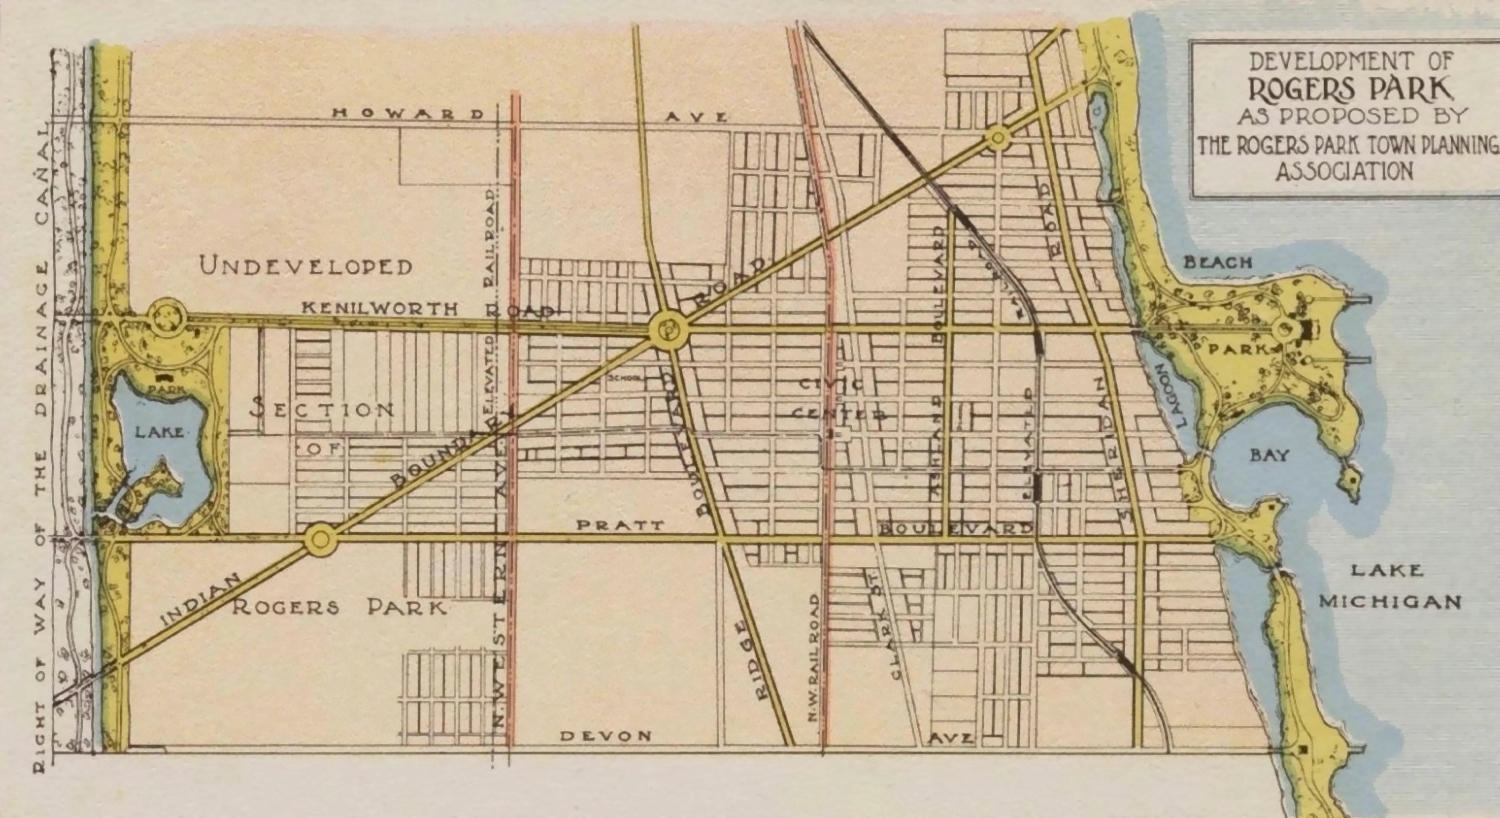 rogers park community of chicago street map showing indian boundary road